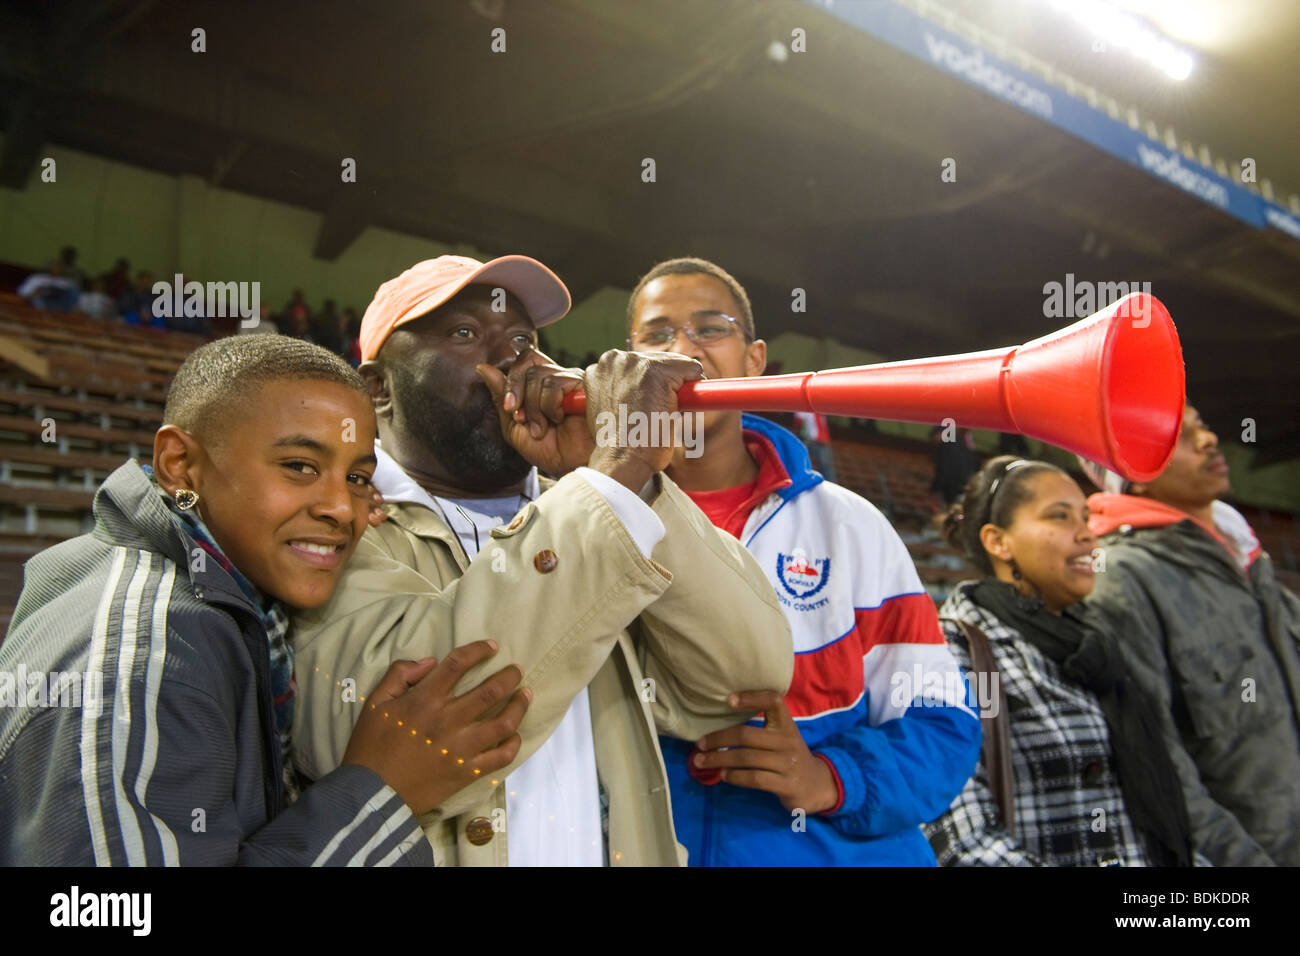 FAN DE FOOT AVEC VUVZELA, NEWLANDS STADIUM, CAPE TOWN, AFRIQUE DU SUD Photo Stock